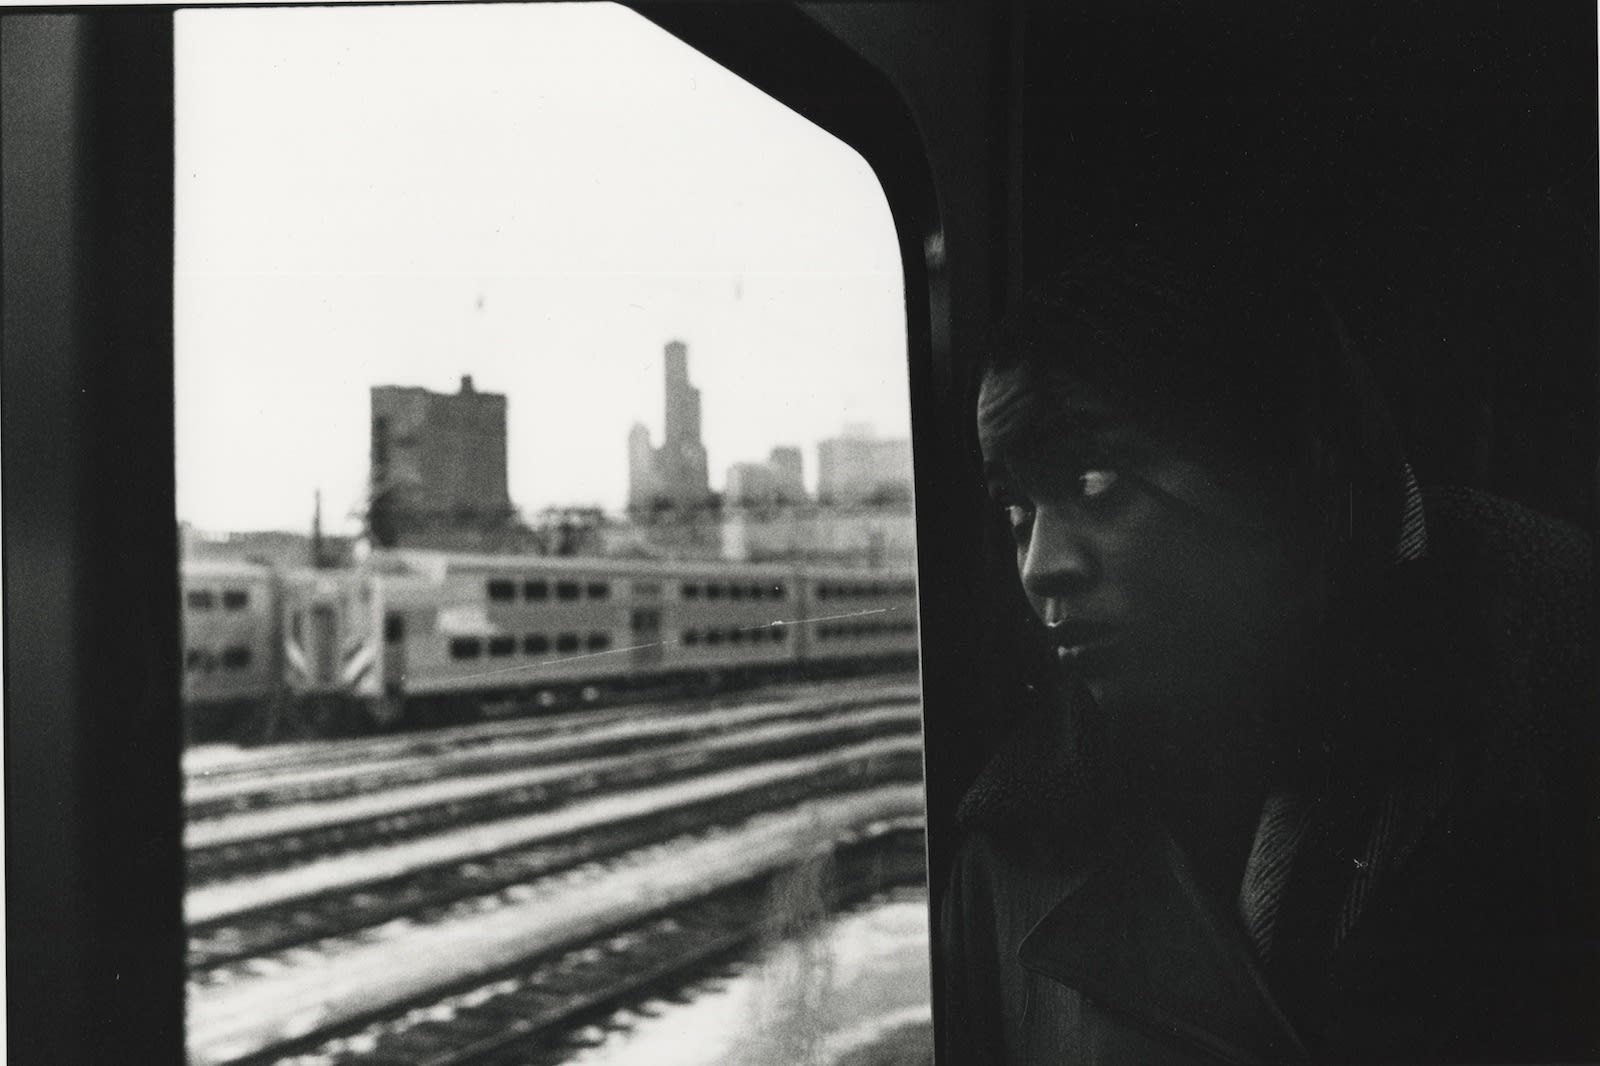 Tom Arndt, Woman on the train, Southside Chicago, 1995